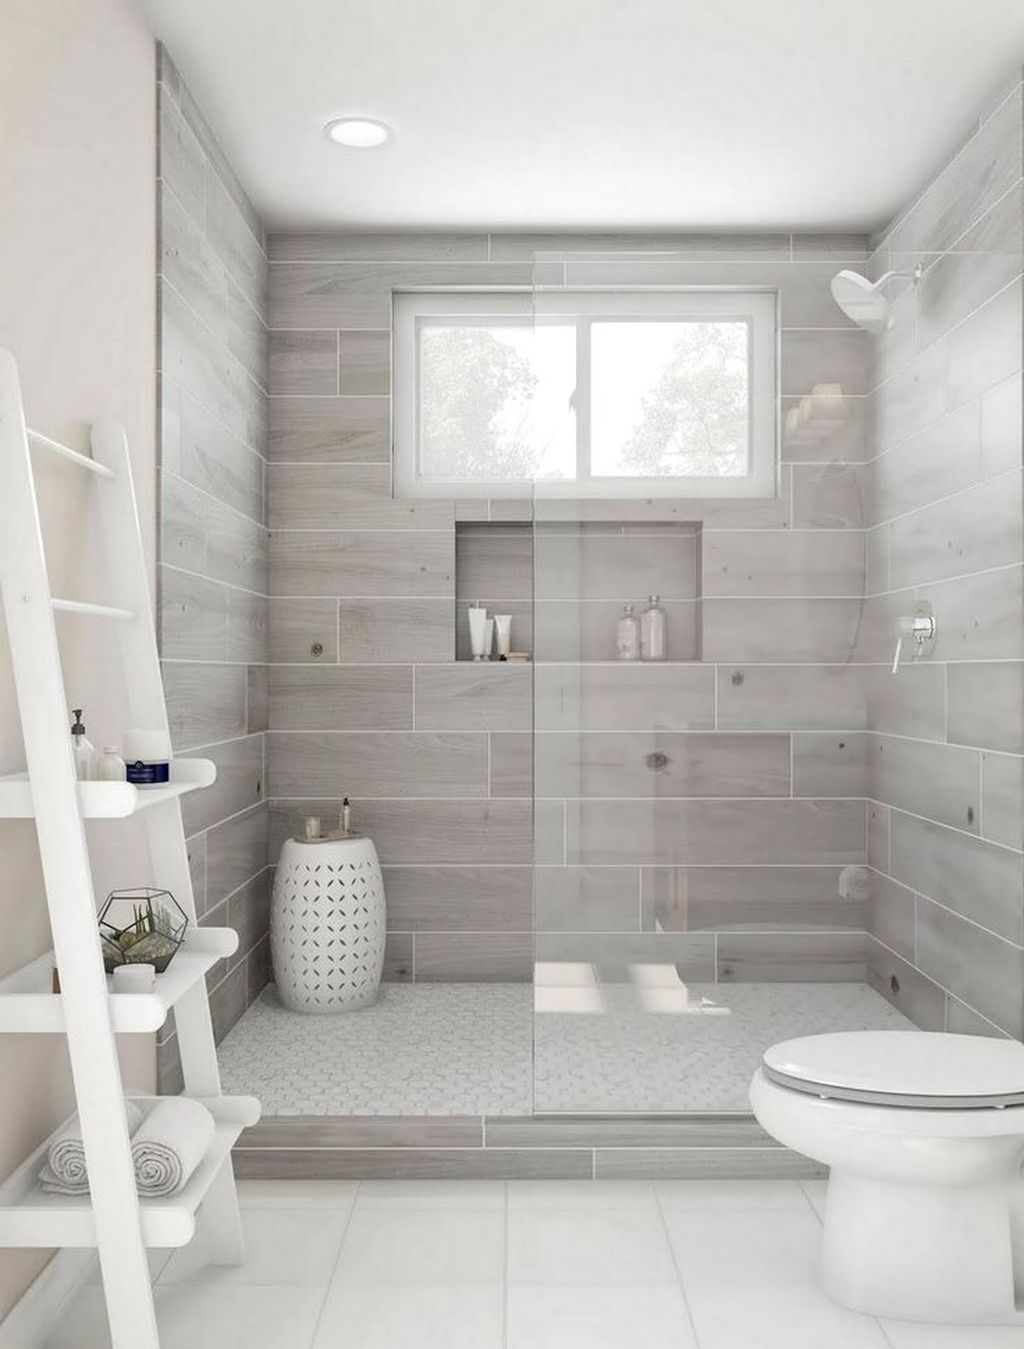 Awesome Small Bathroom Remodel Ideas On A Budget 28